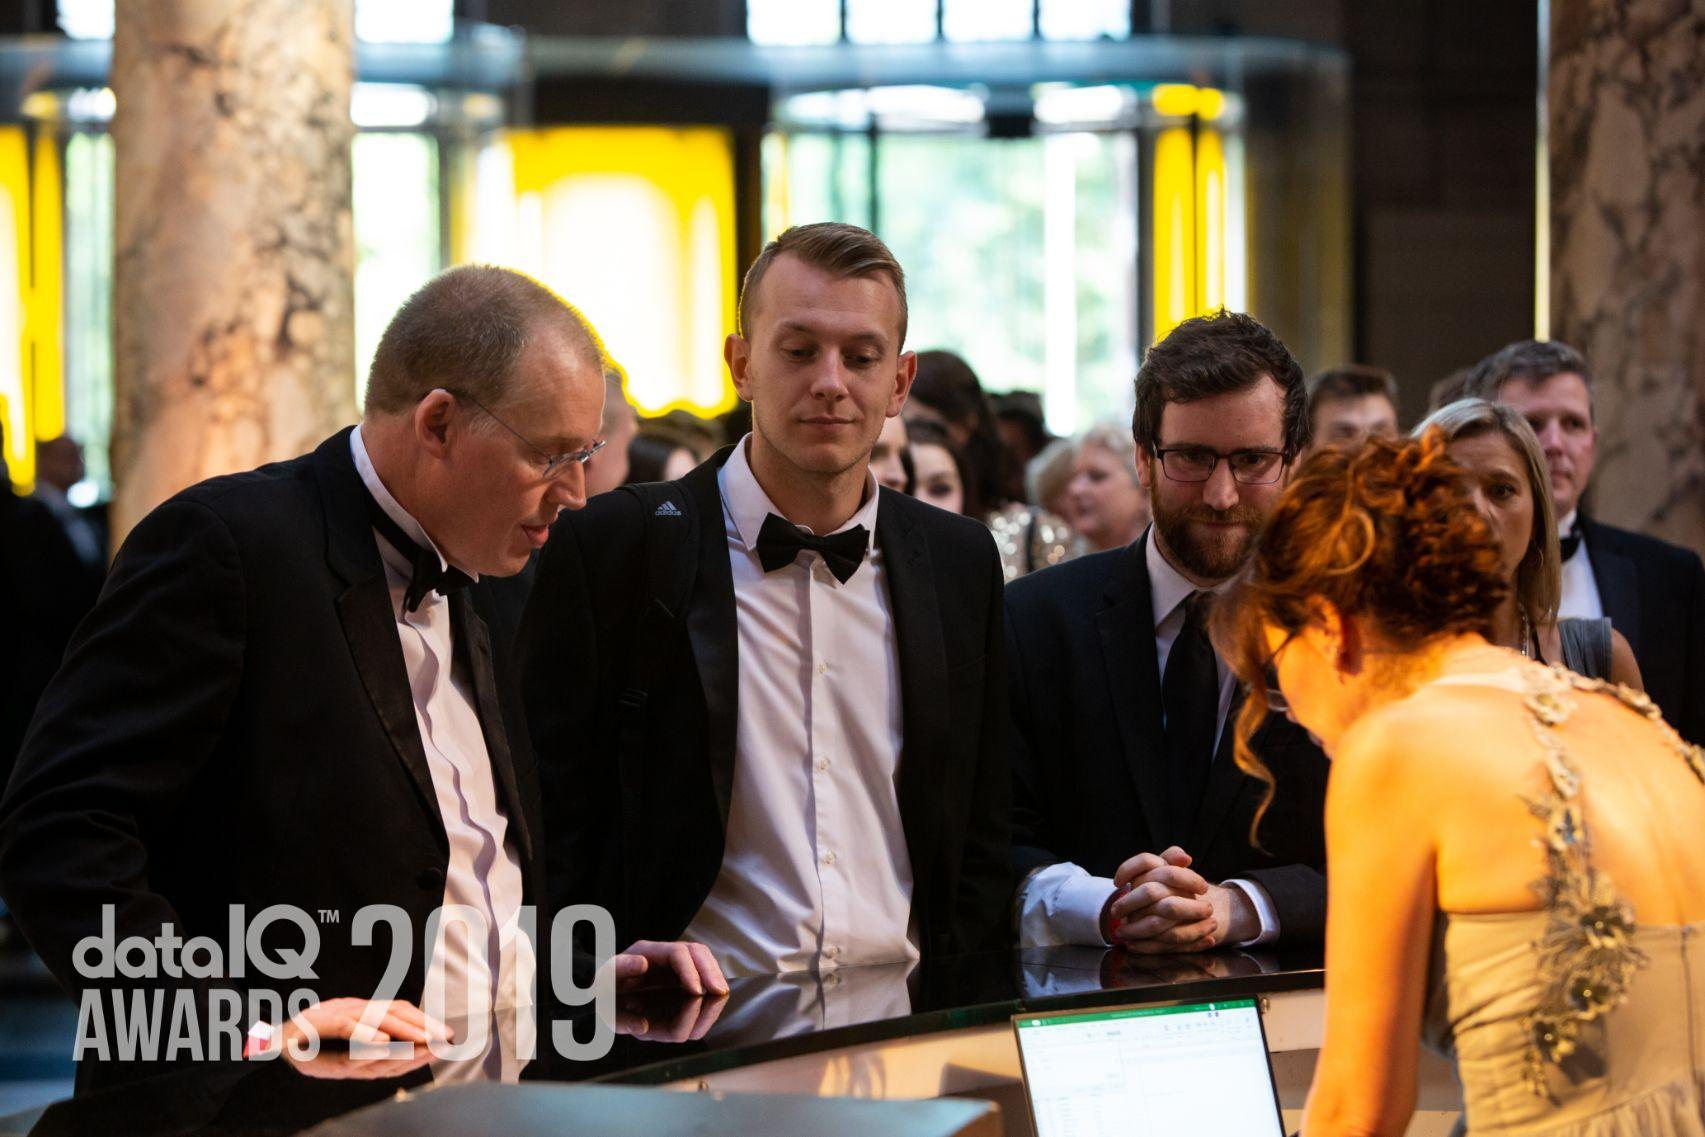 Awards 2019 Image 92